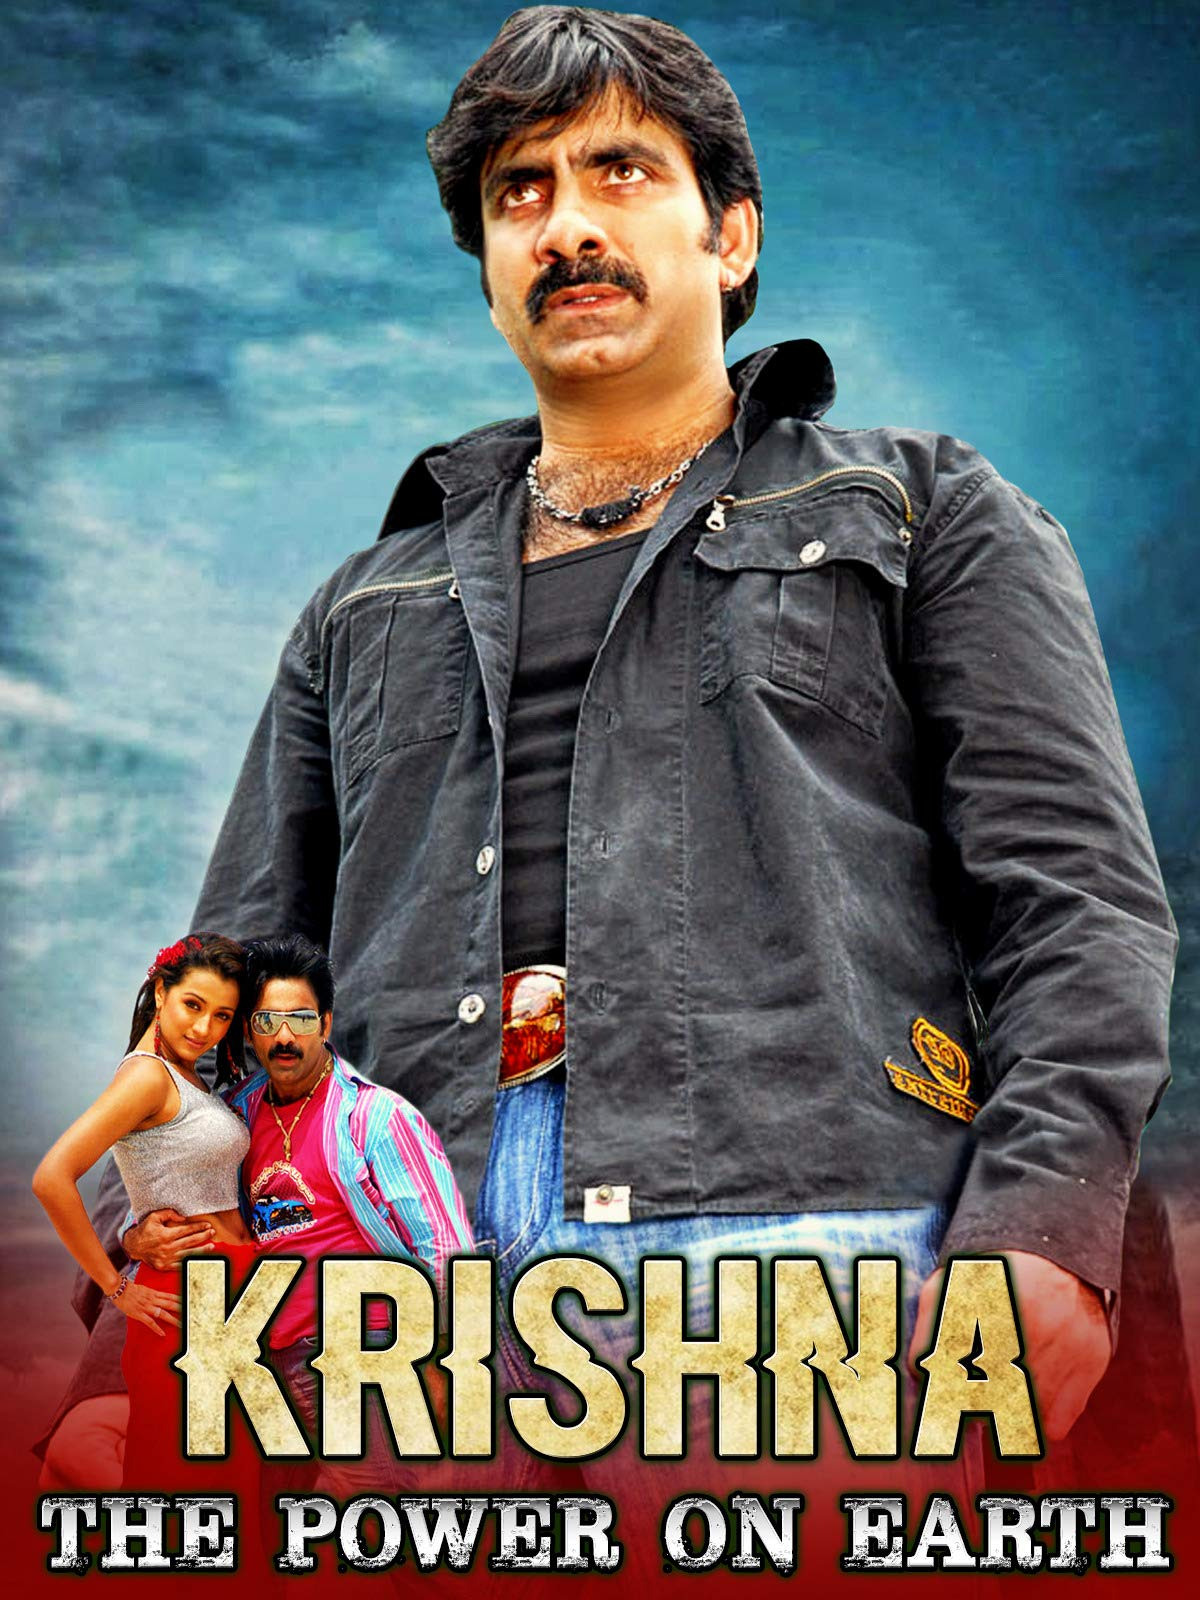 Krishna The Power On Earth (2020) Hindi Dubbed Movie 720p HDRip 850MB MKV